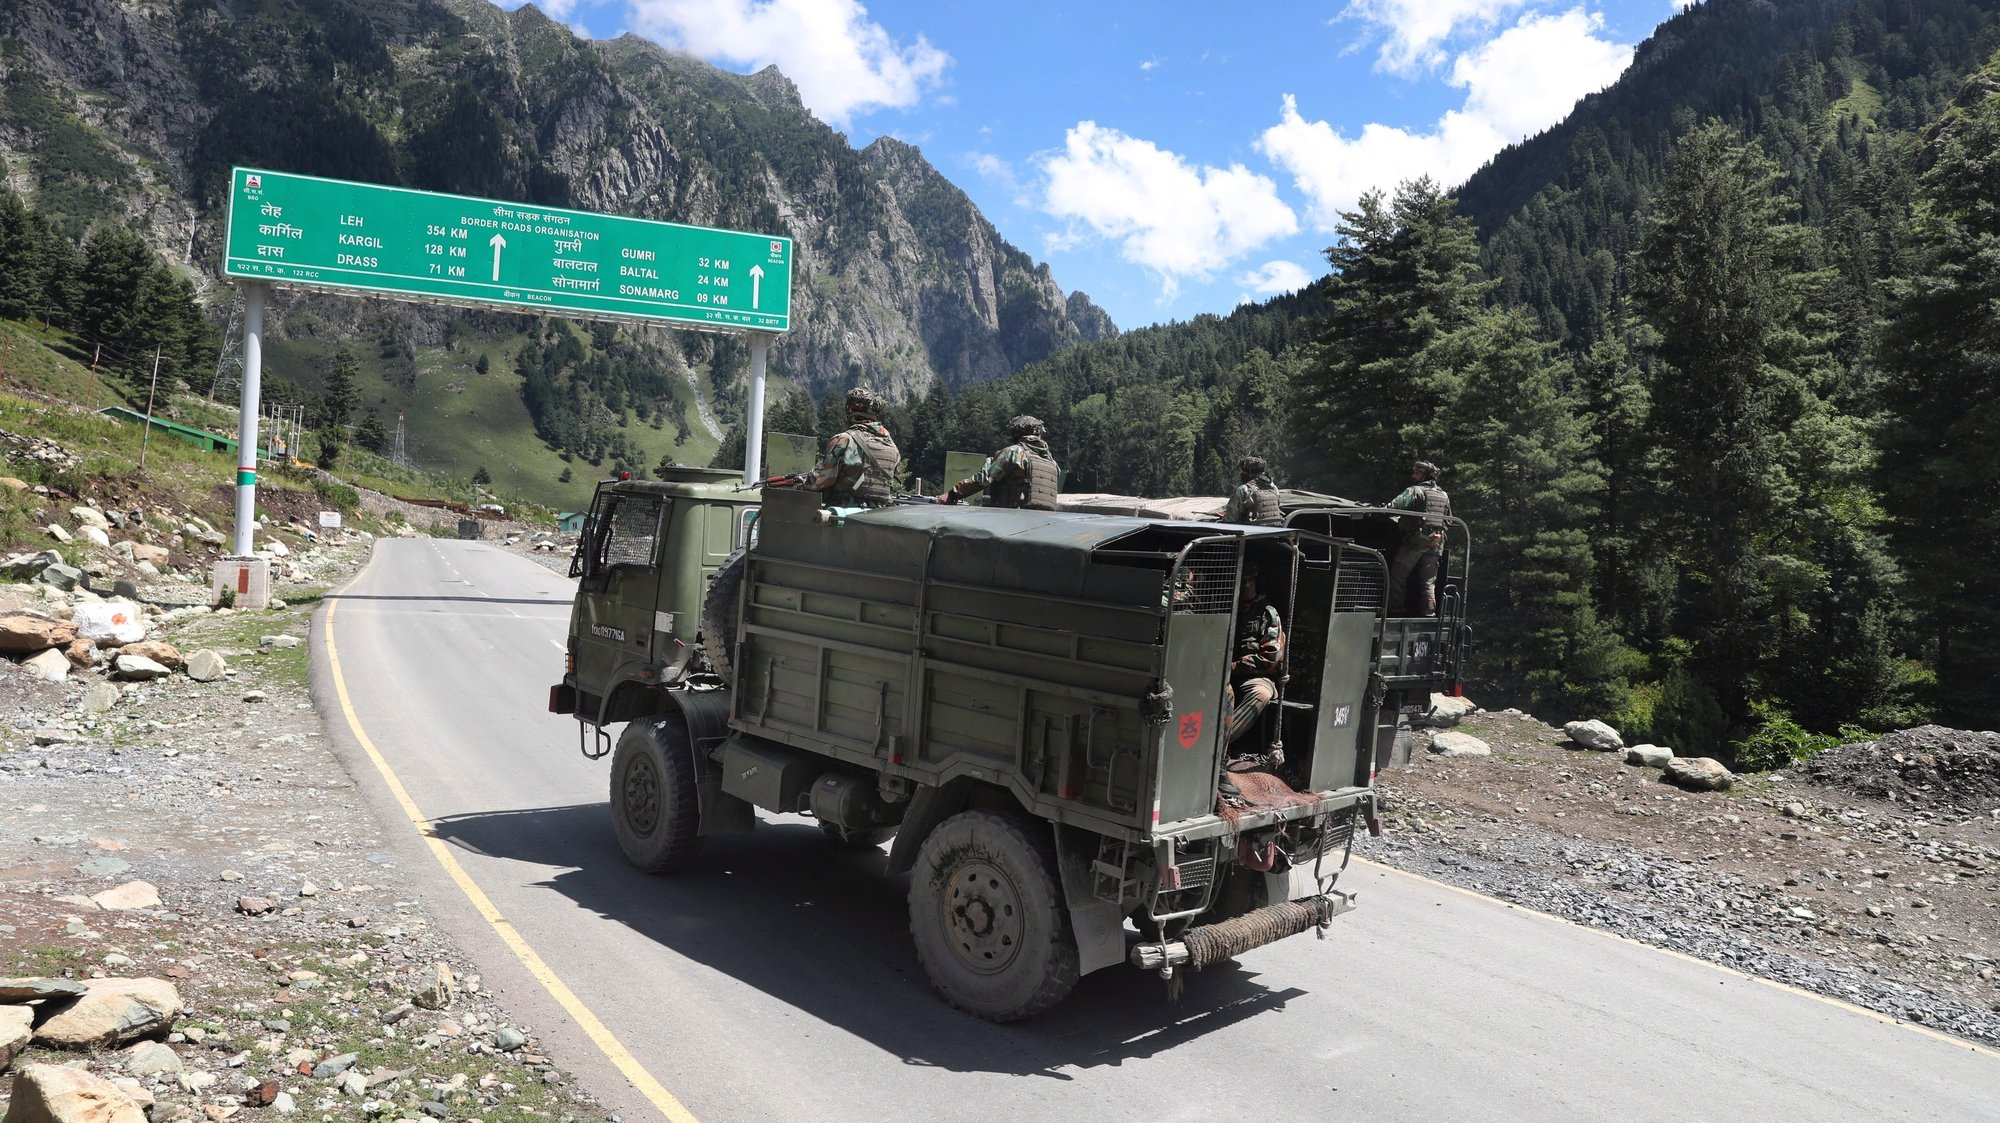 epa08658802 Indian army vehicles move along a highway leading to Ladakh, at Gagangeer some 81 kilometers from Srinagar, the summer capital of Indian Kashmir, 07 September 2020 (issued 10 September 2020). Apart from nomadic families with goats, sheep and horses, no one is allowed to travel along the normally bustling mountain road to allow the Indian military to operate freely amid a months-long standoff between India and China along the disputed border in eastern Ladakh.  EPA/FAROOQ KHAN